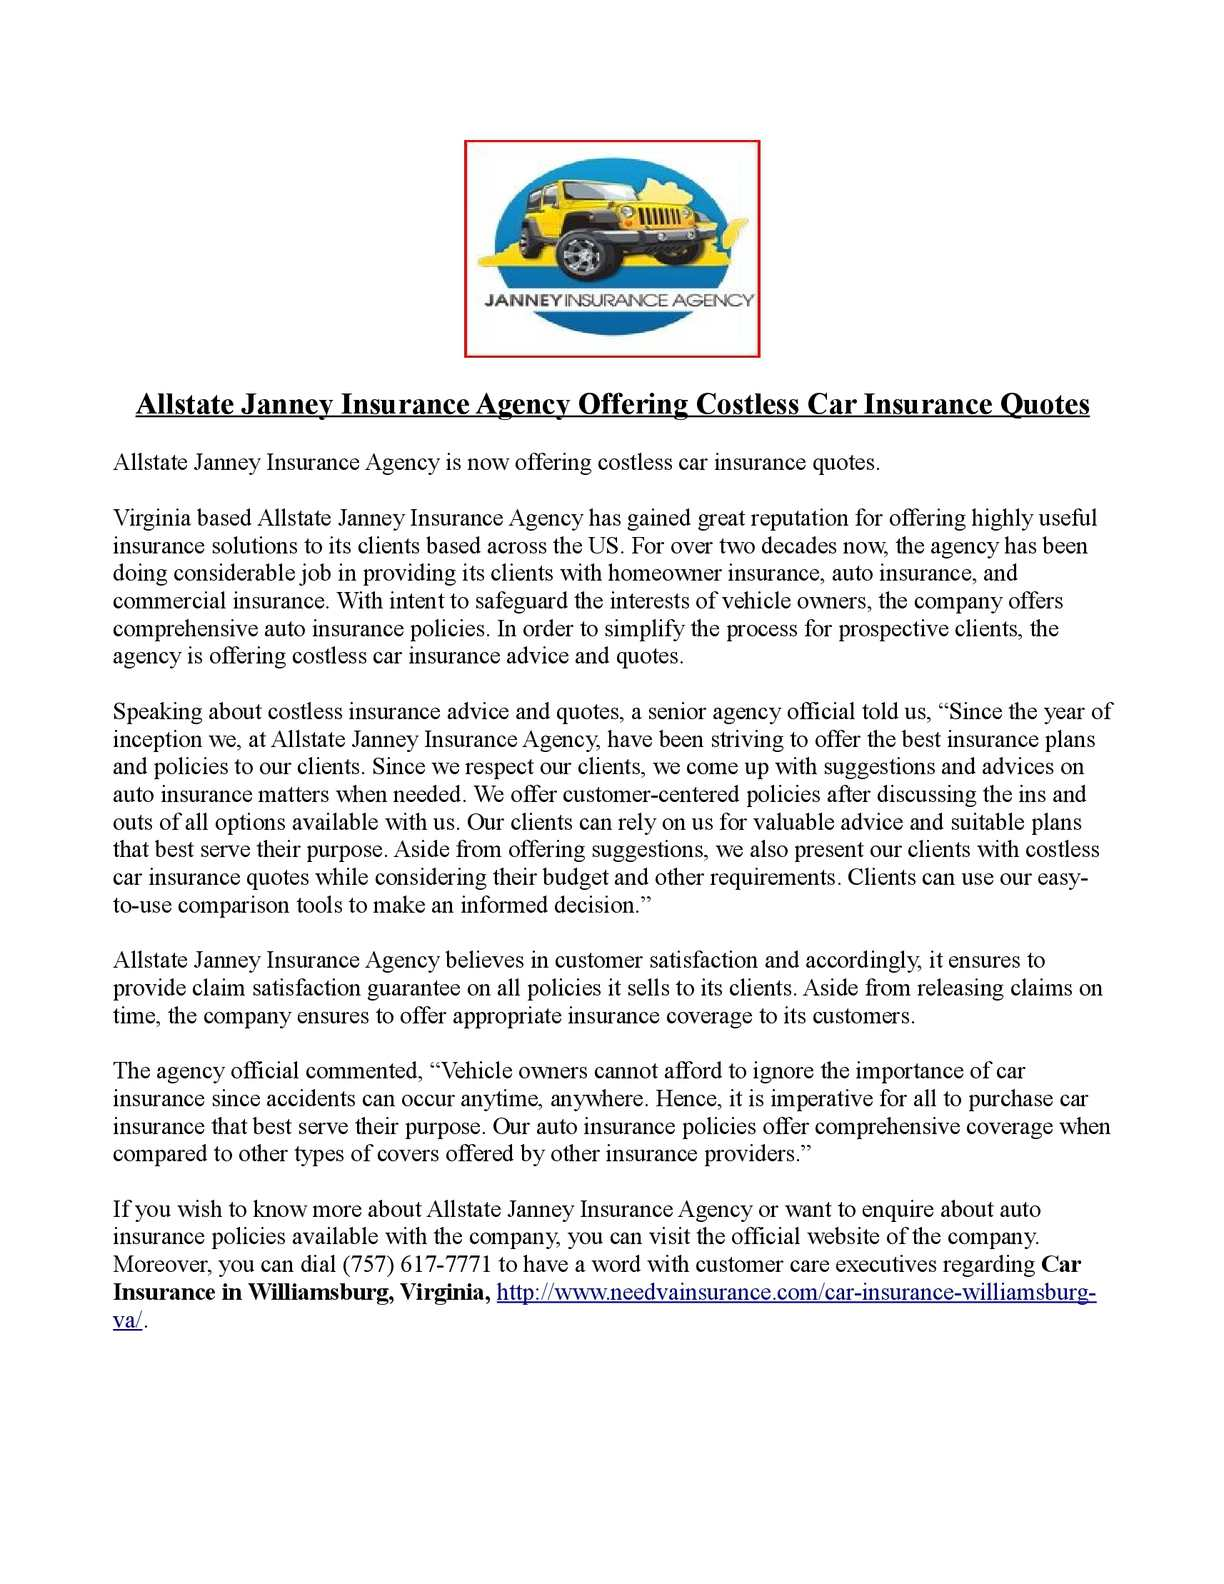 Allstate Customer Care >> Calameo Allstate Janney Insurance Agency Offering Costless